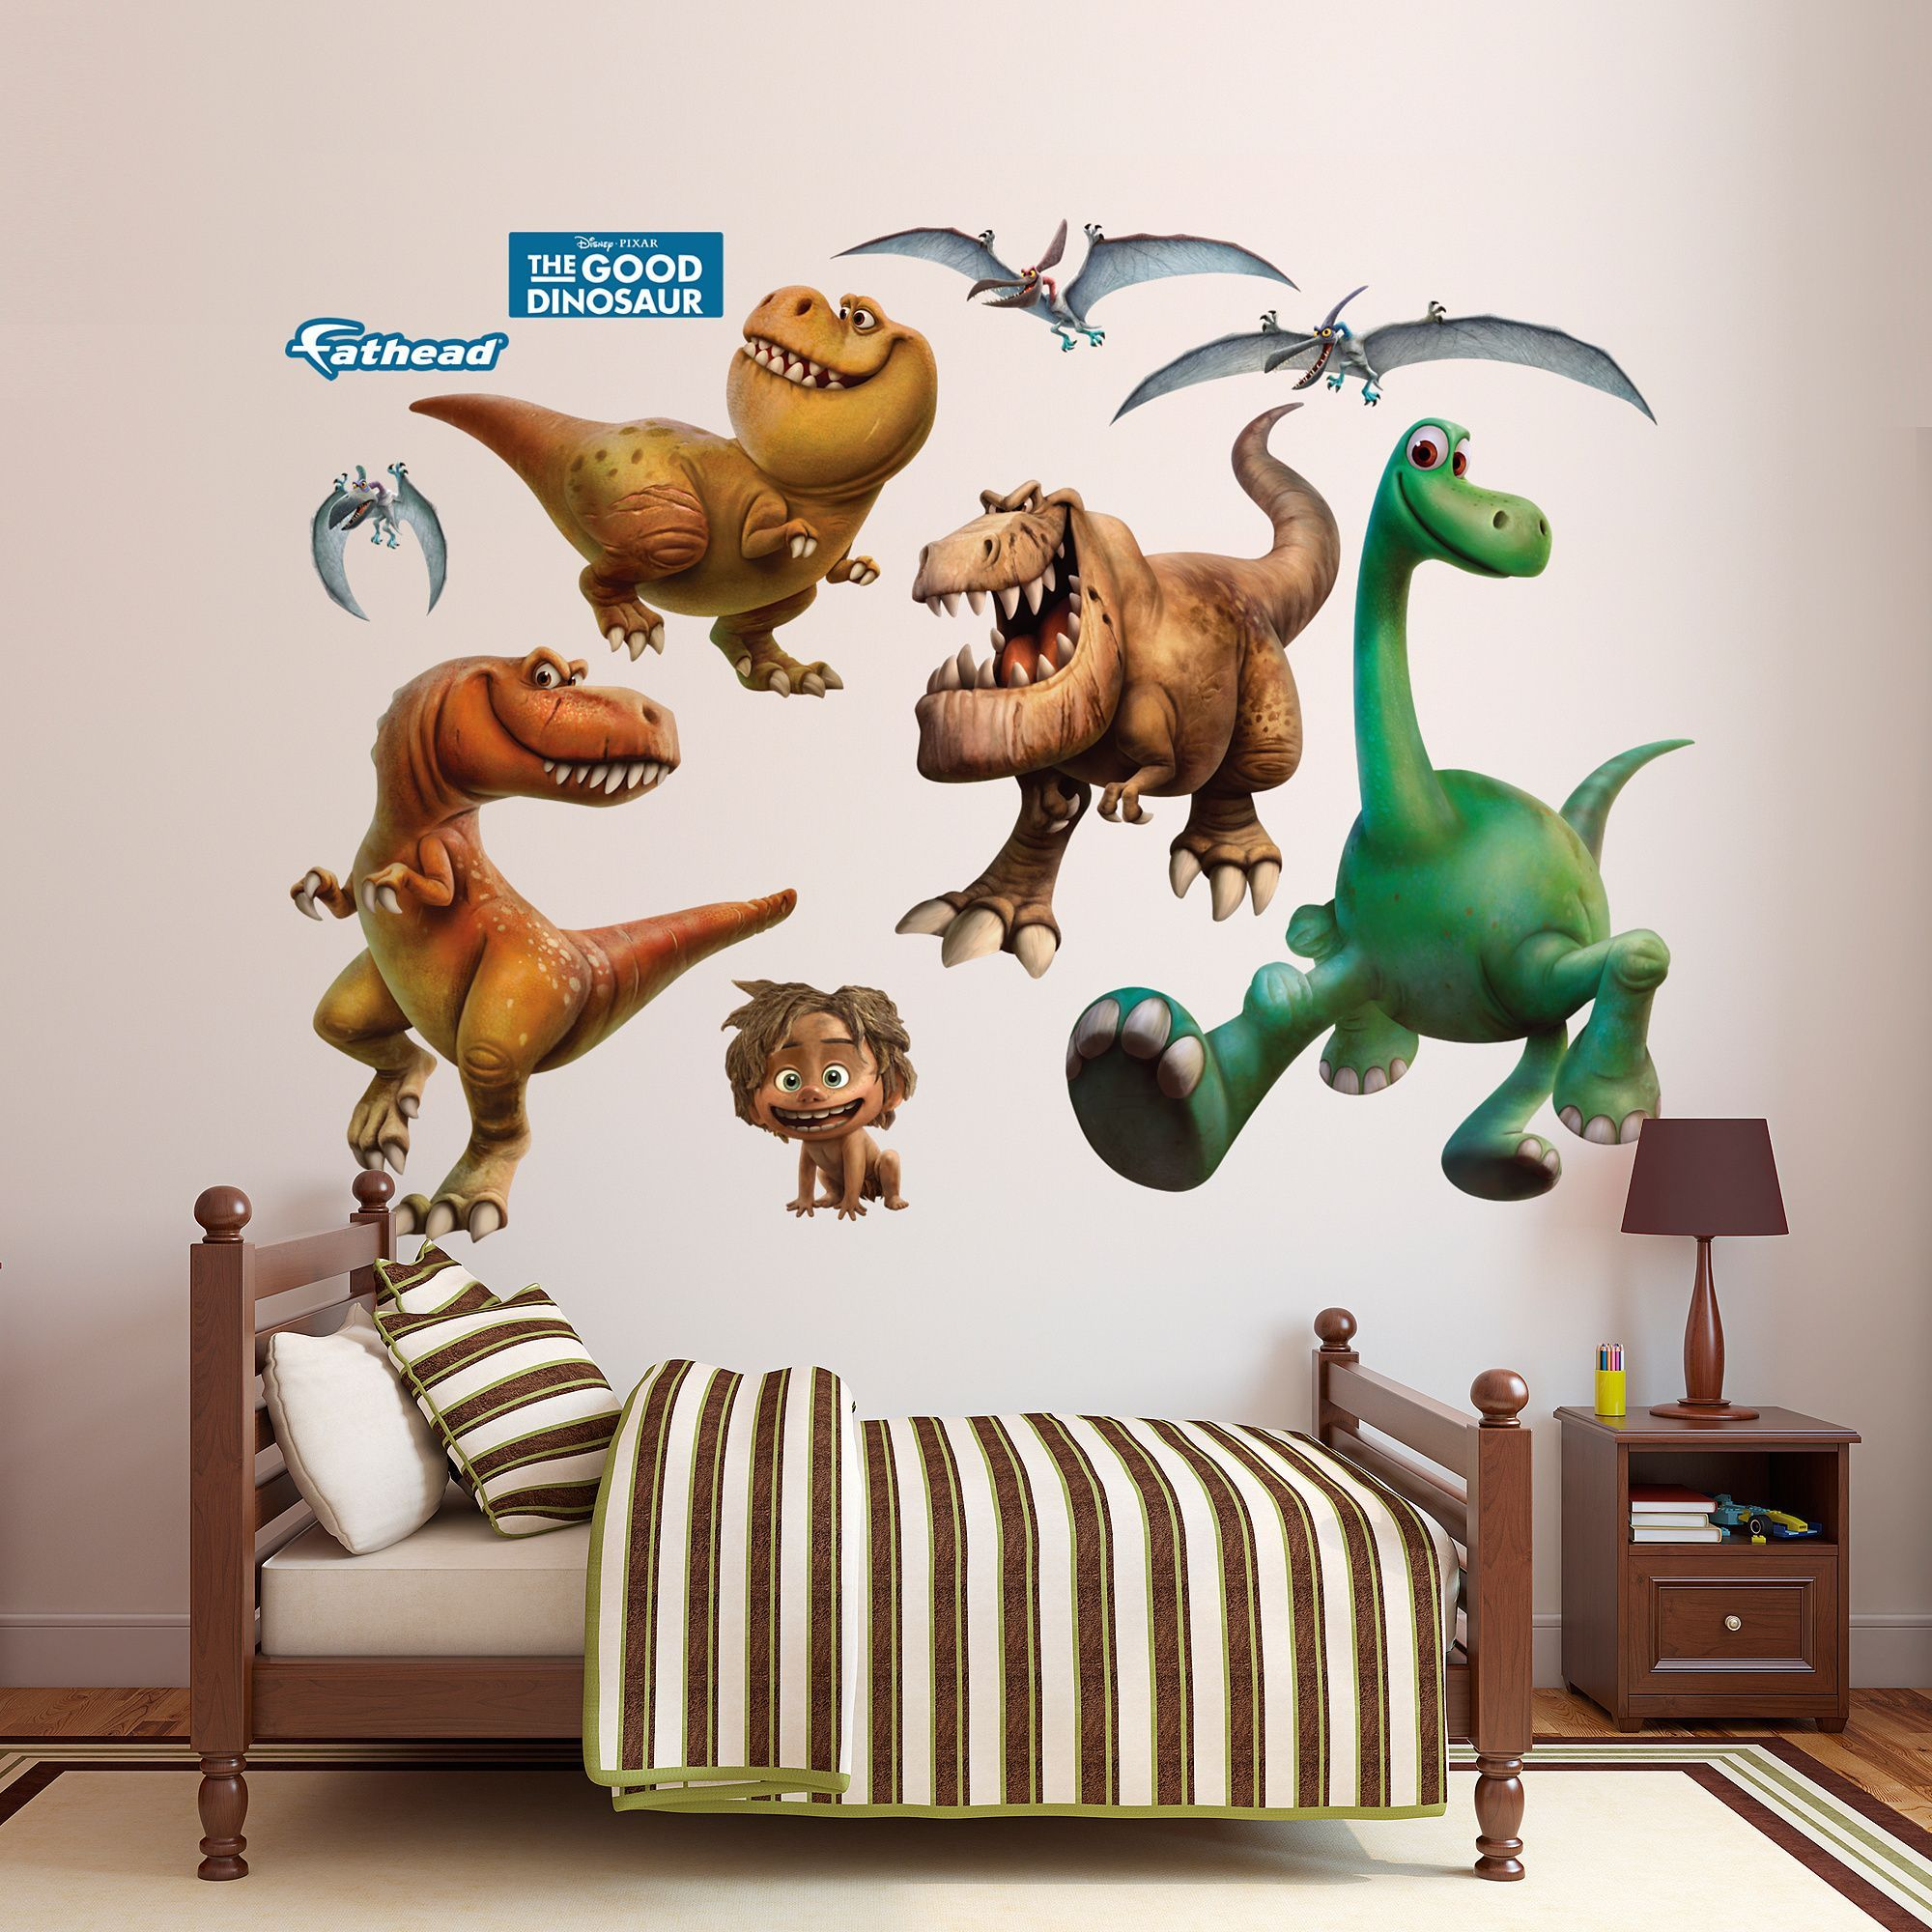 Fathead The Good Dinosaur Collection Wall Decals Birthday Ideas - 3d dinosaur wall decalsd dinosaurs wall stickers decals boys room animals wall decals